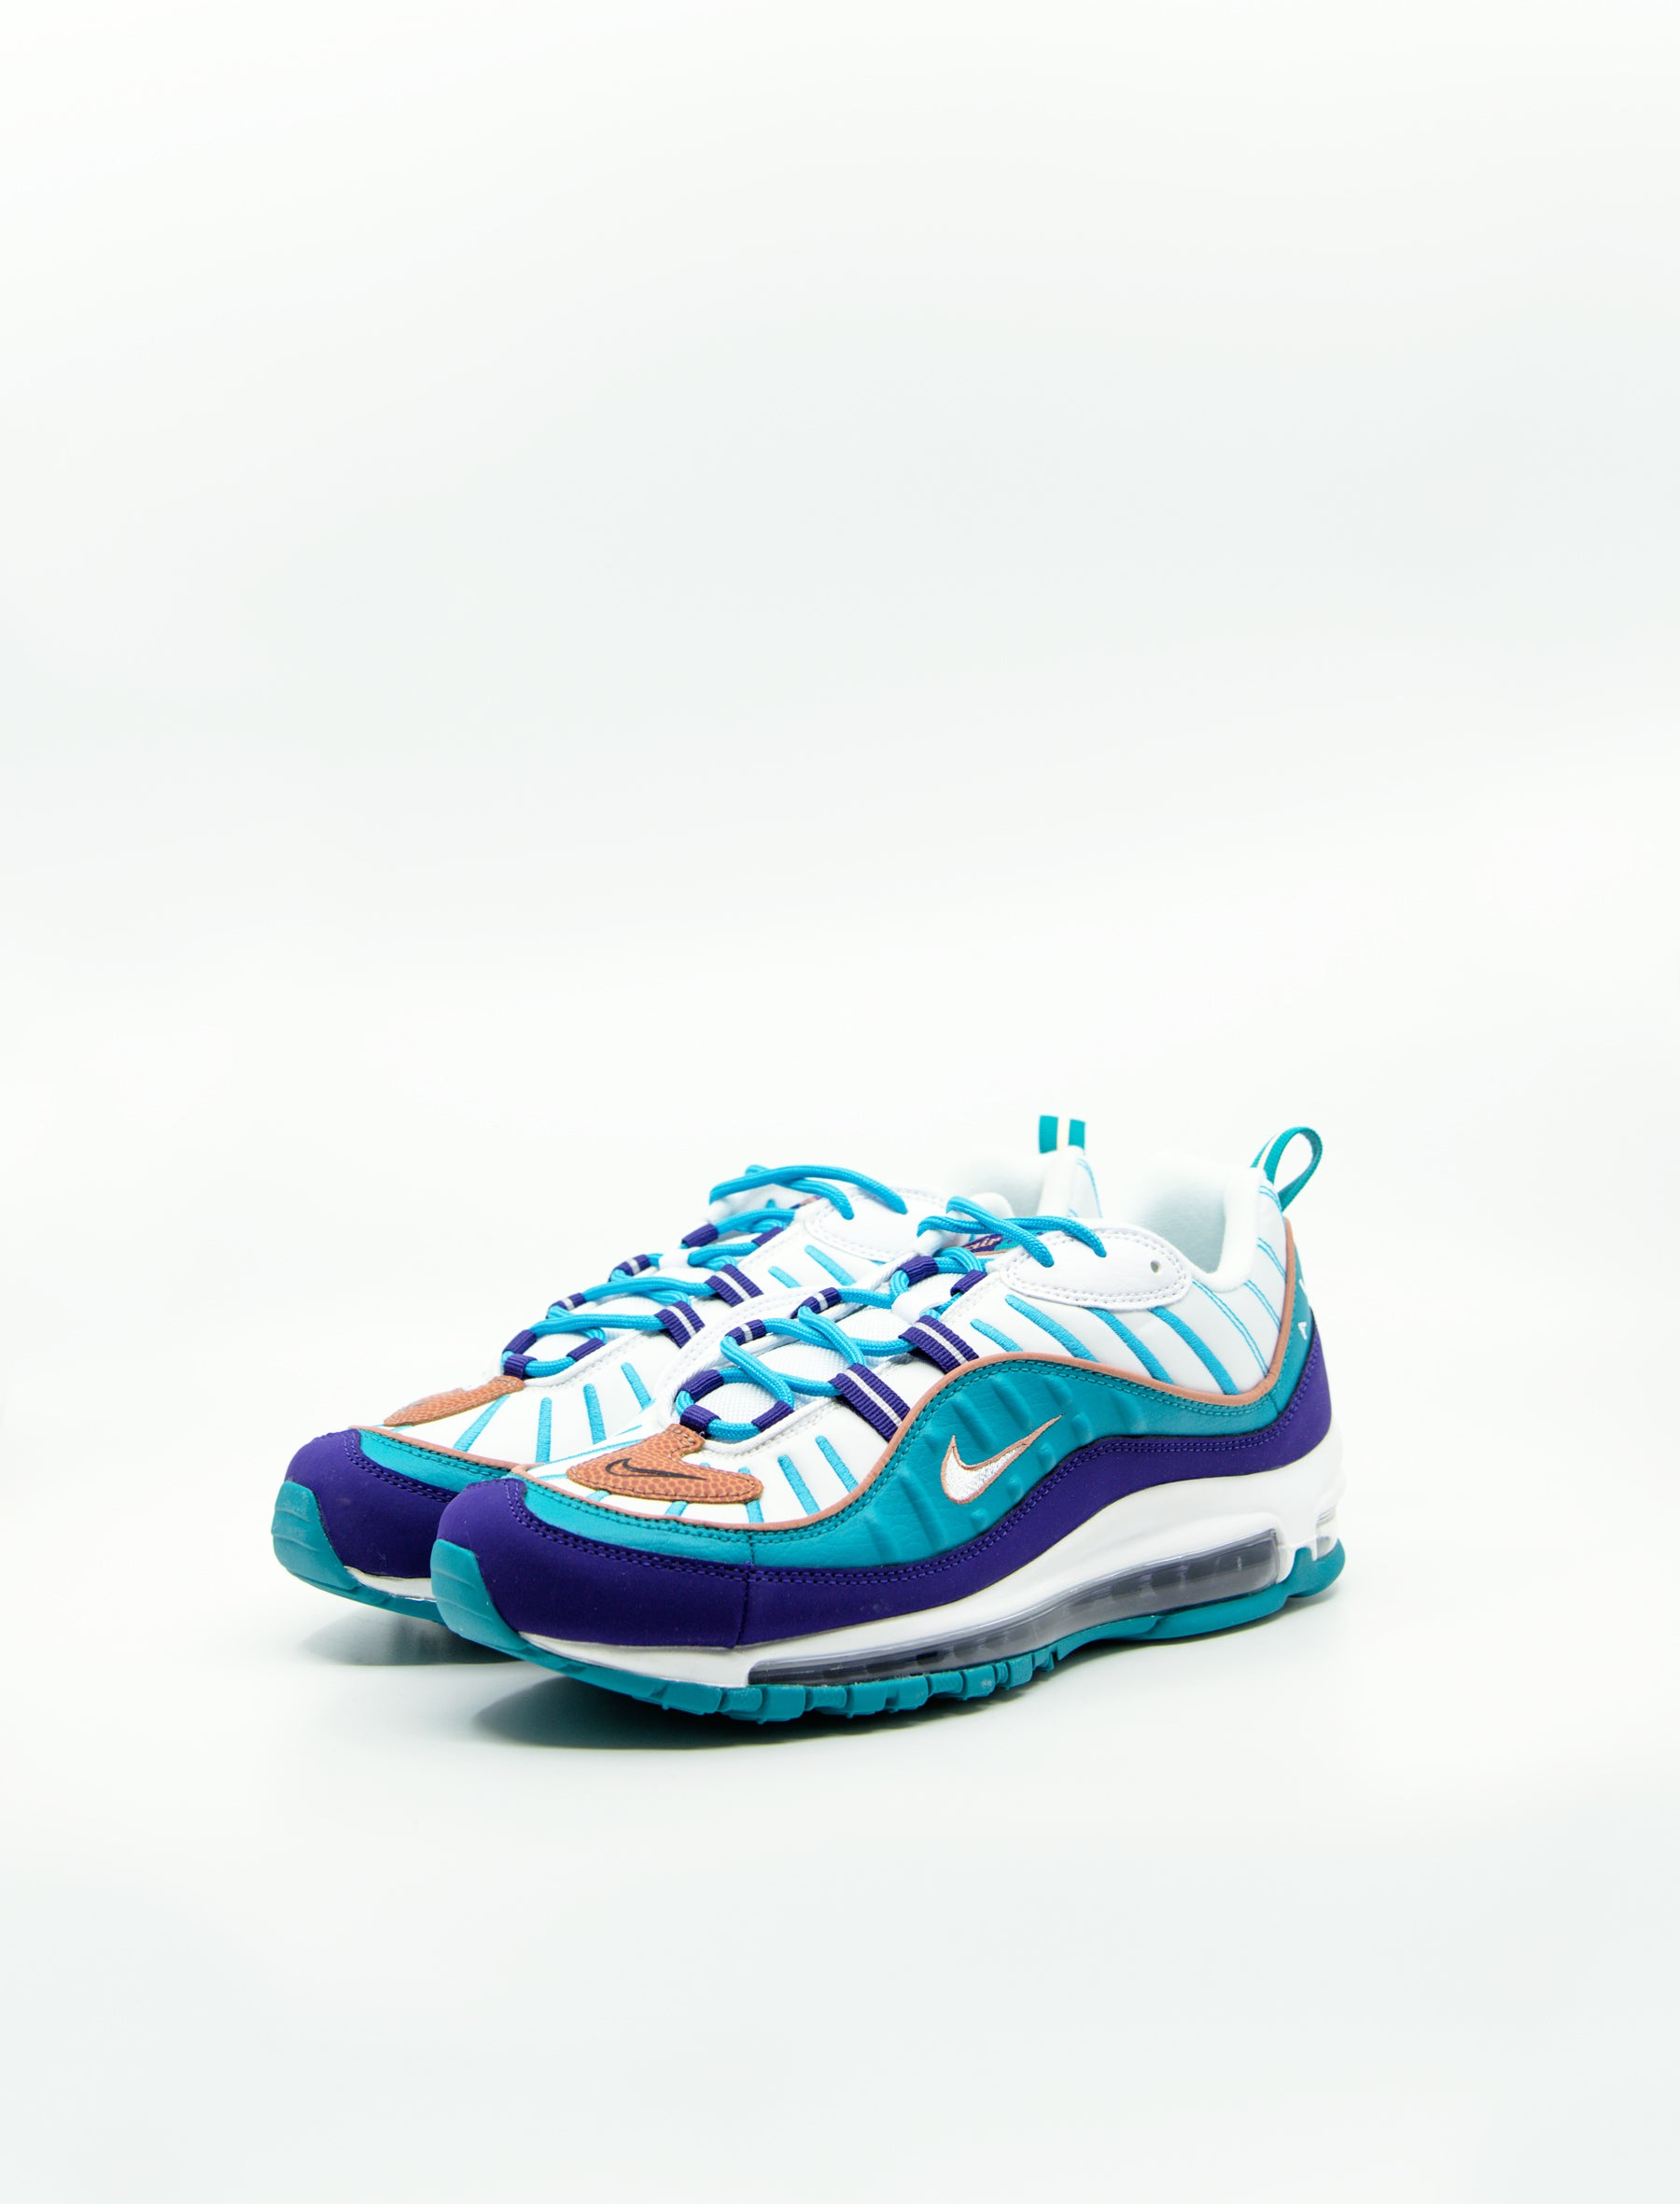 5ef786f3bced4 Air Max 98 Court Purple/Blush/Teal 640744-500 - NOMAD